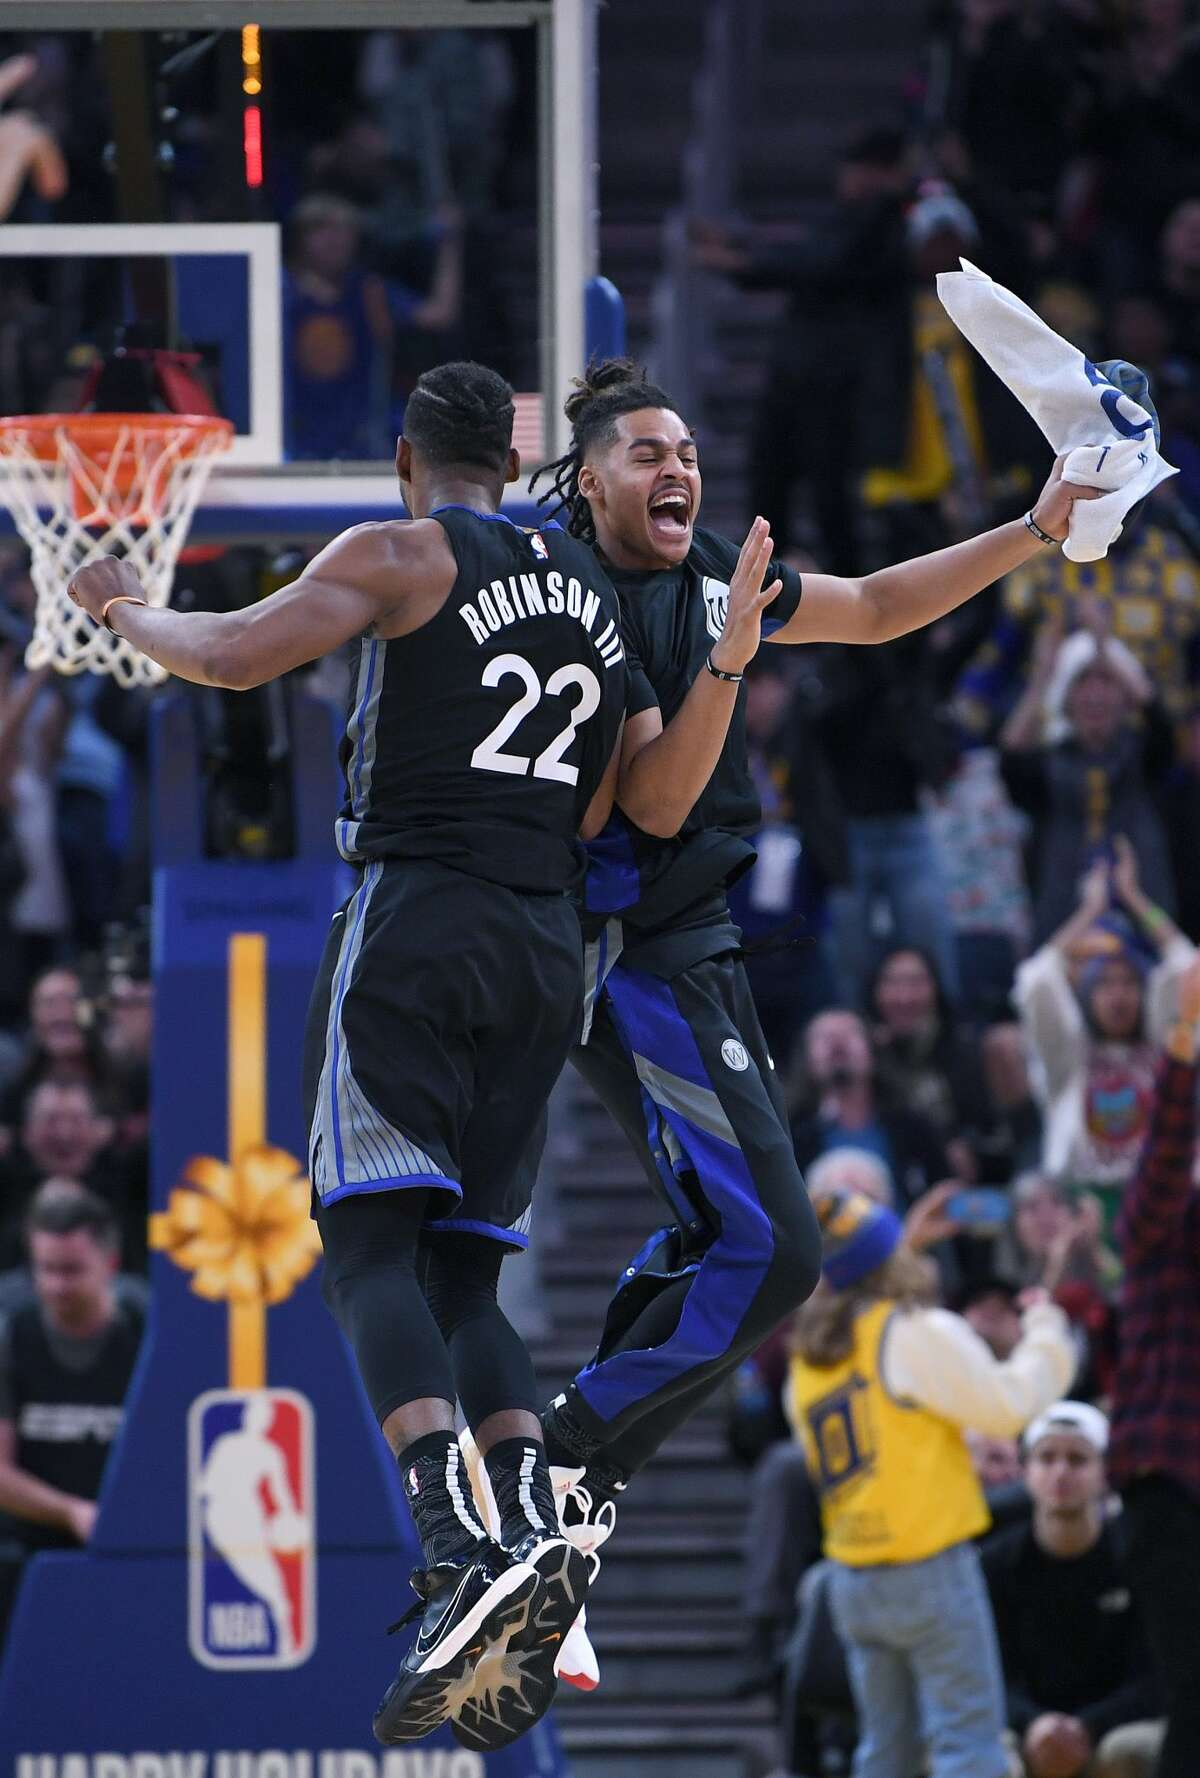 SAN FRANCISCO, CALIFORNIA - DECEMBER 25: Glenn Robinson III #22 and Jordan Poole #3 of the Golden State Warriors celebrates after Robinson III made a three-point shot against the Houston Rockets during the second half of an NBA basketball game at Chase Center on December 25, 2019 in San Francisco, California. NOTE TO USER: User expressly acknowledges and agrees that, by downloading and or using this photograph, User is consenting to the terms and conditions of the Getty Images License Agreement. (Photo by Thearon W. Henderson/Getty Images)